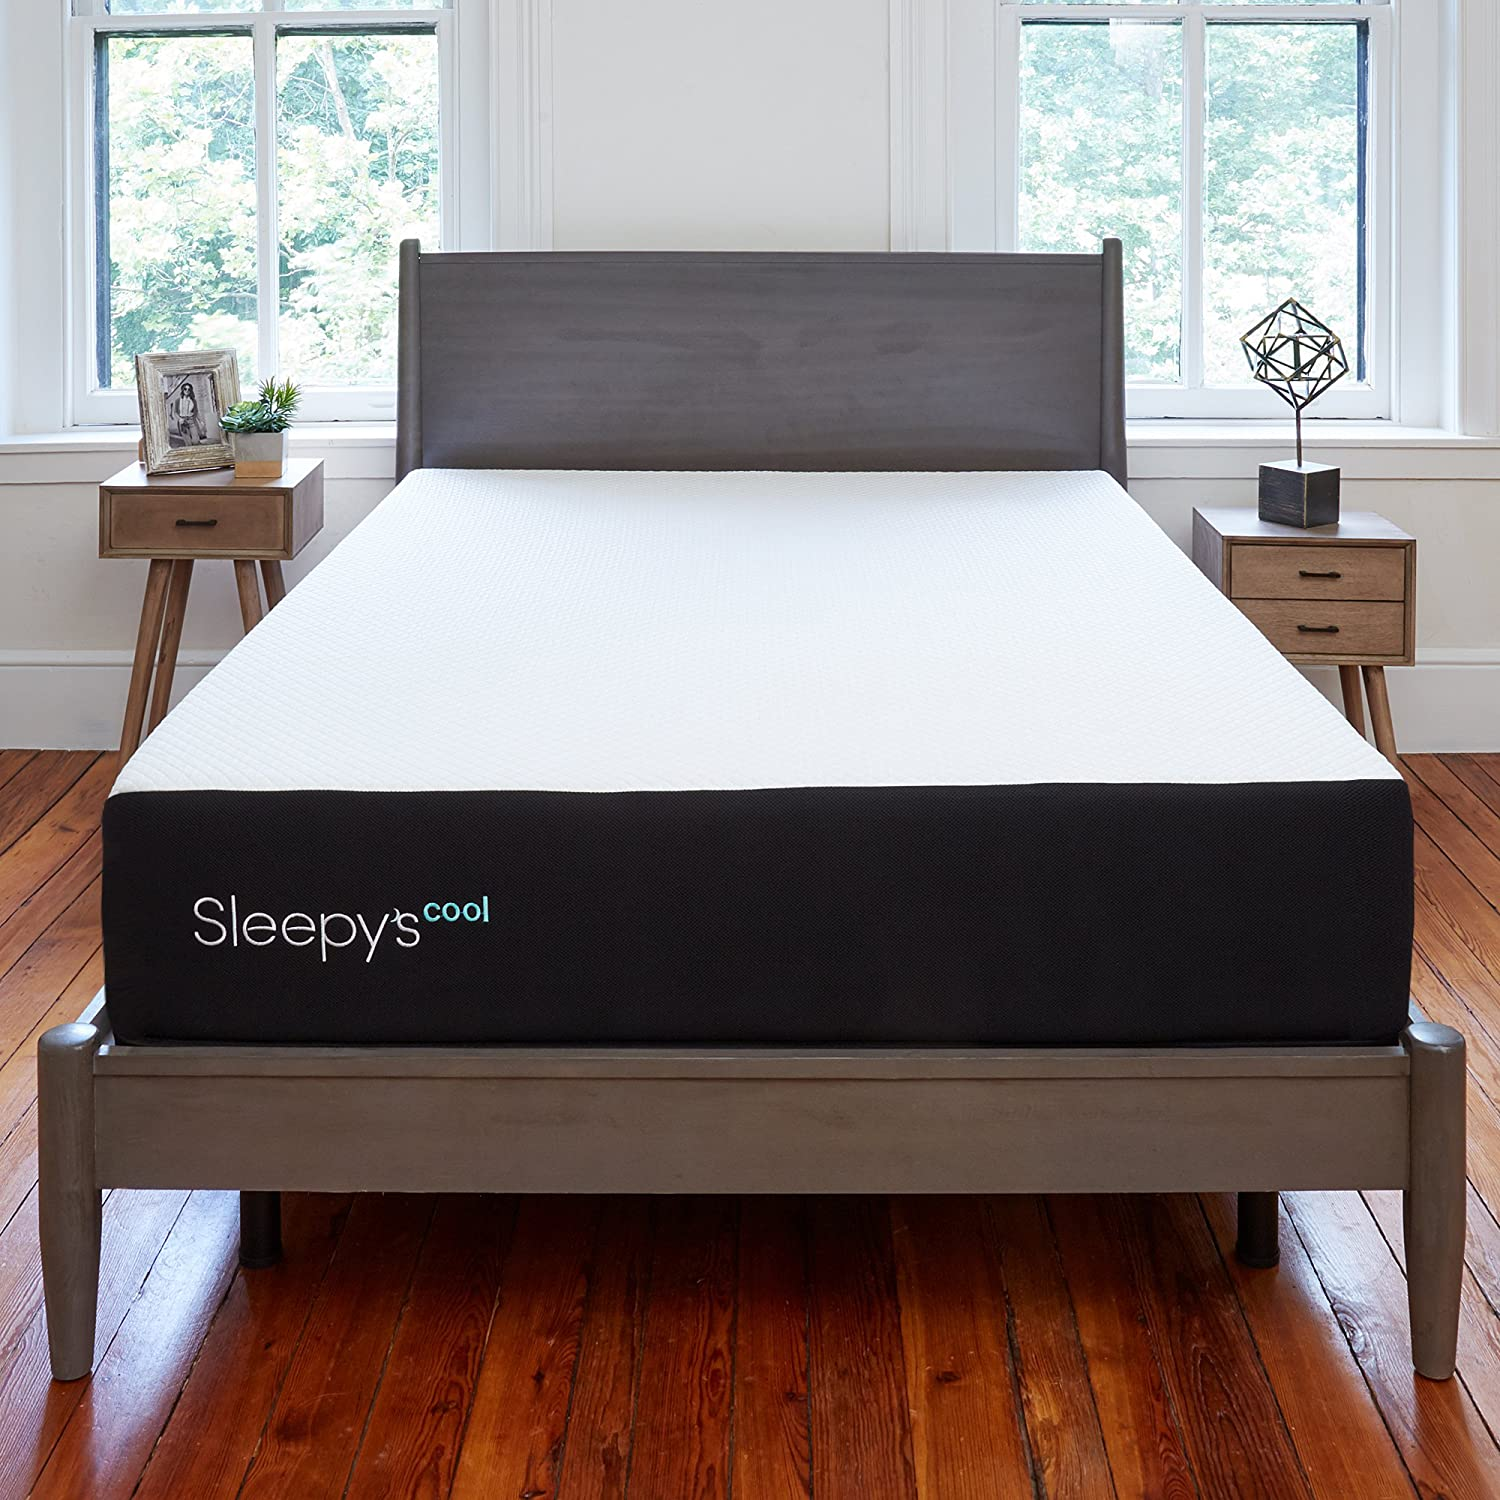 amazon com sleepy s cool plush mattress full size kitchen dining